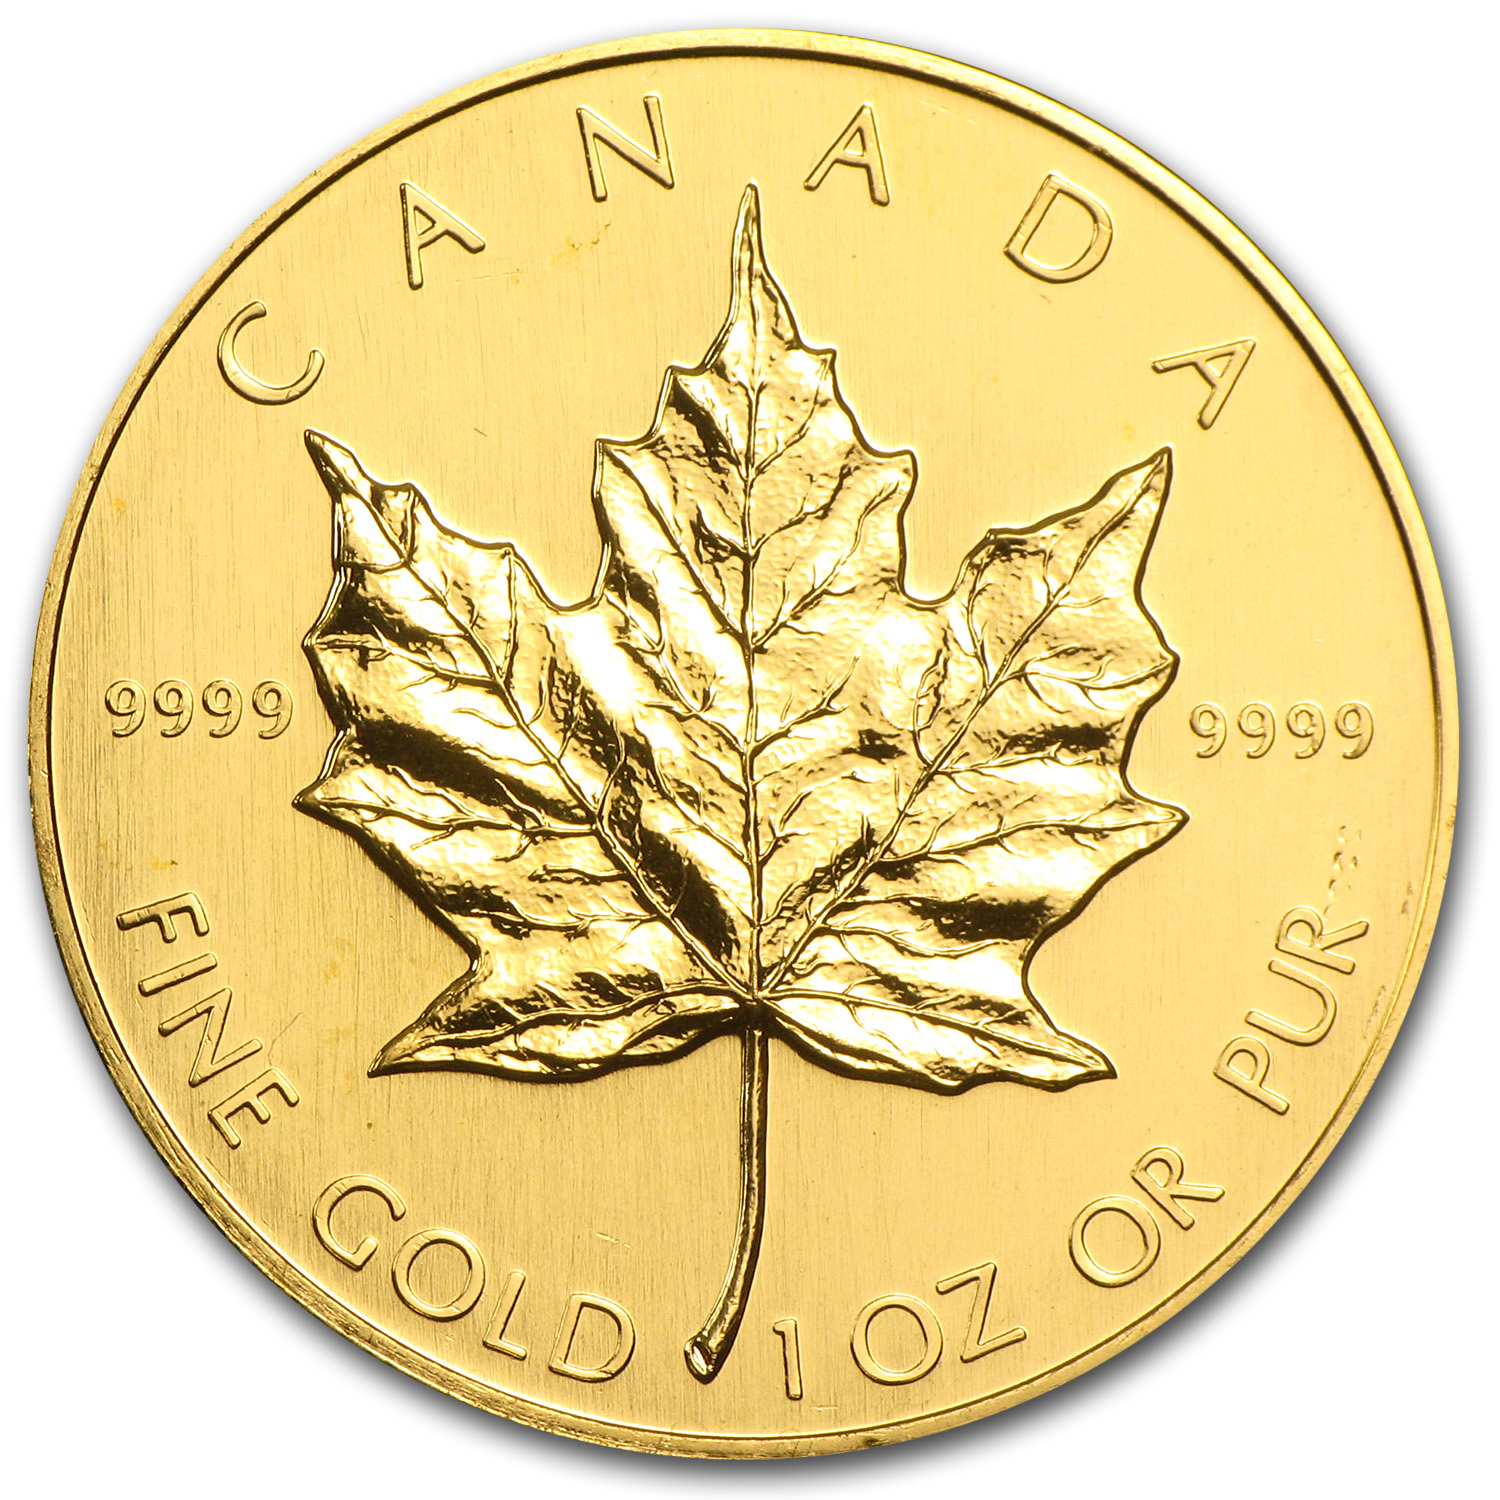 1989 1 oz Gold Canadian Maple Leaf - Brilliant Uncirculated